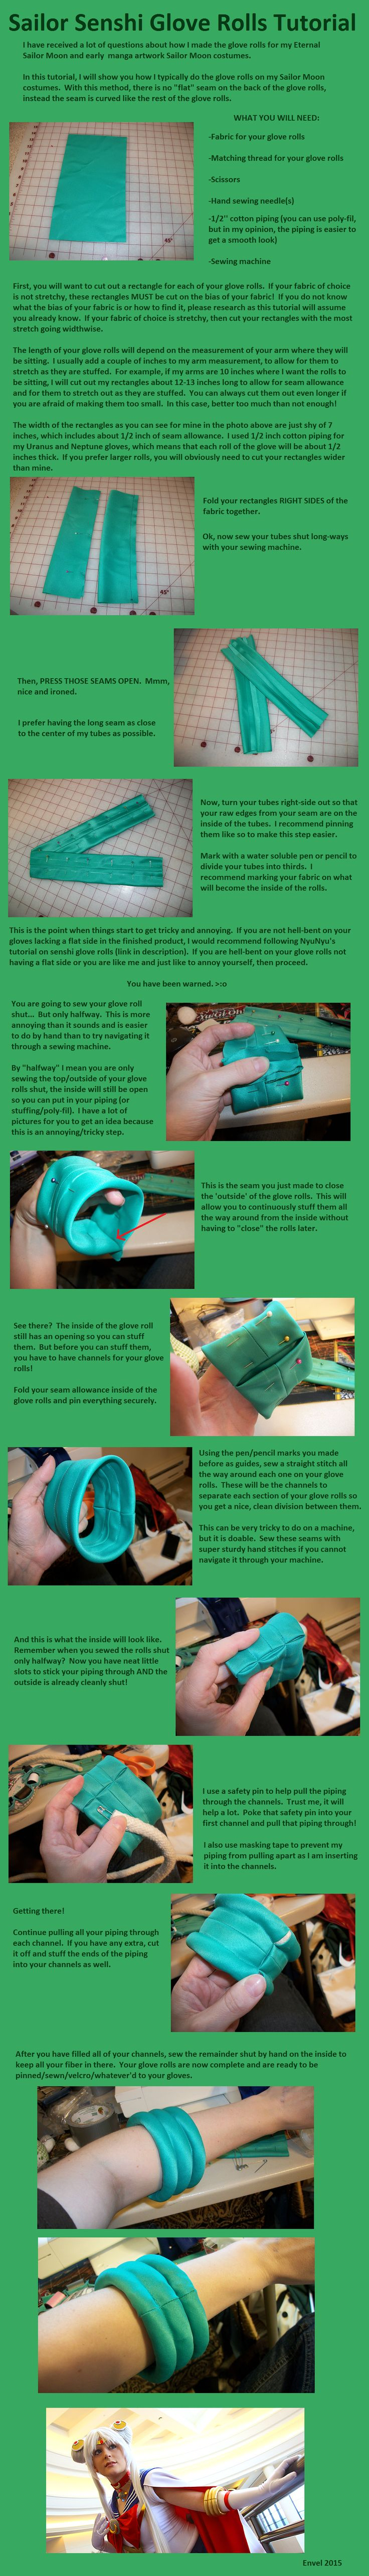 "Sailor scout ""glove roll"" tutorial! For making those ""cuffs"" on the gloves."